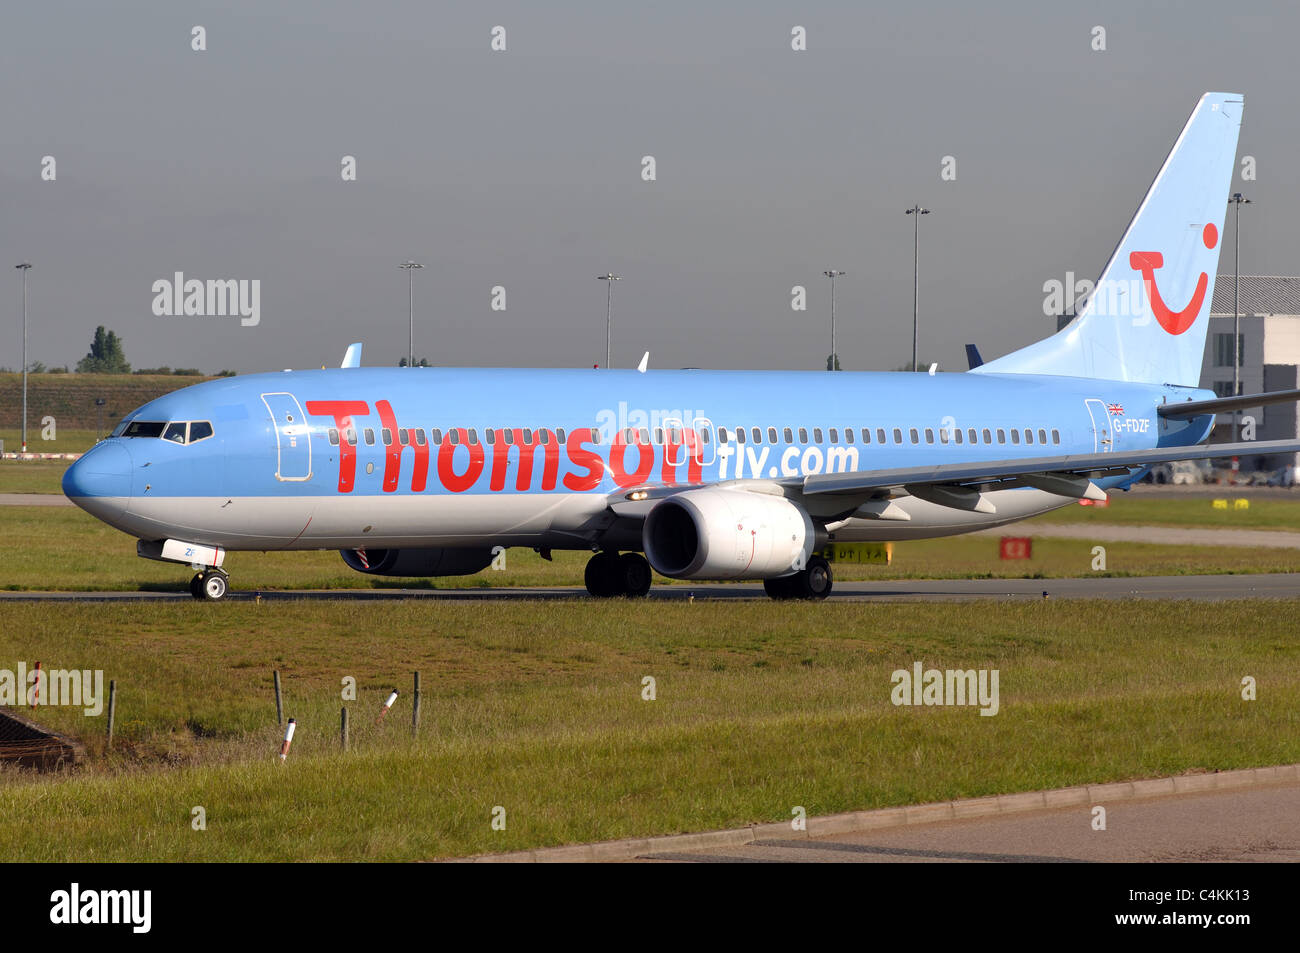 Thomson Boeing 737 aircraft taxiing at Birmingham Airport, UK - Stock Image